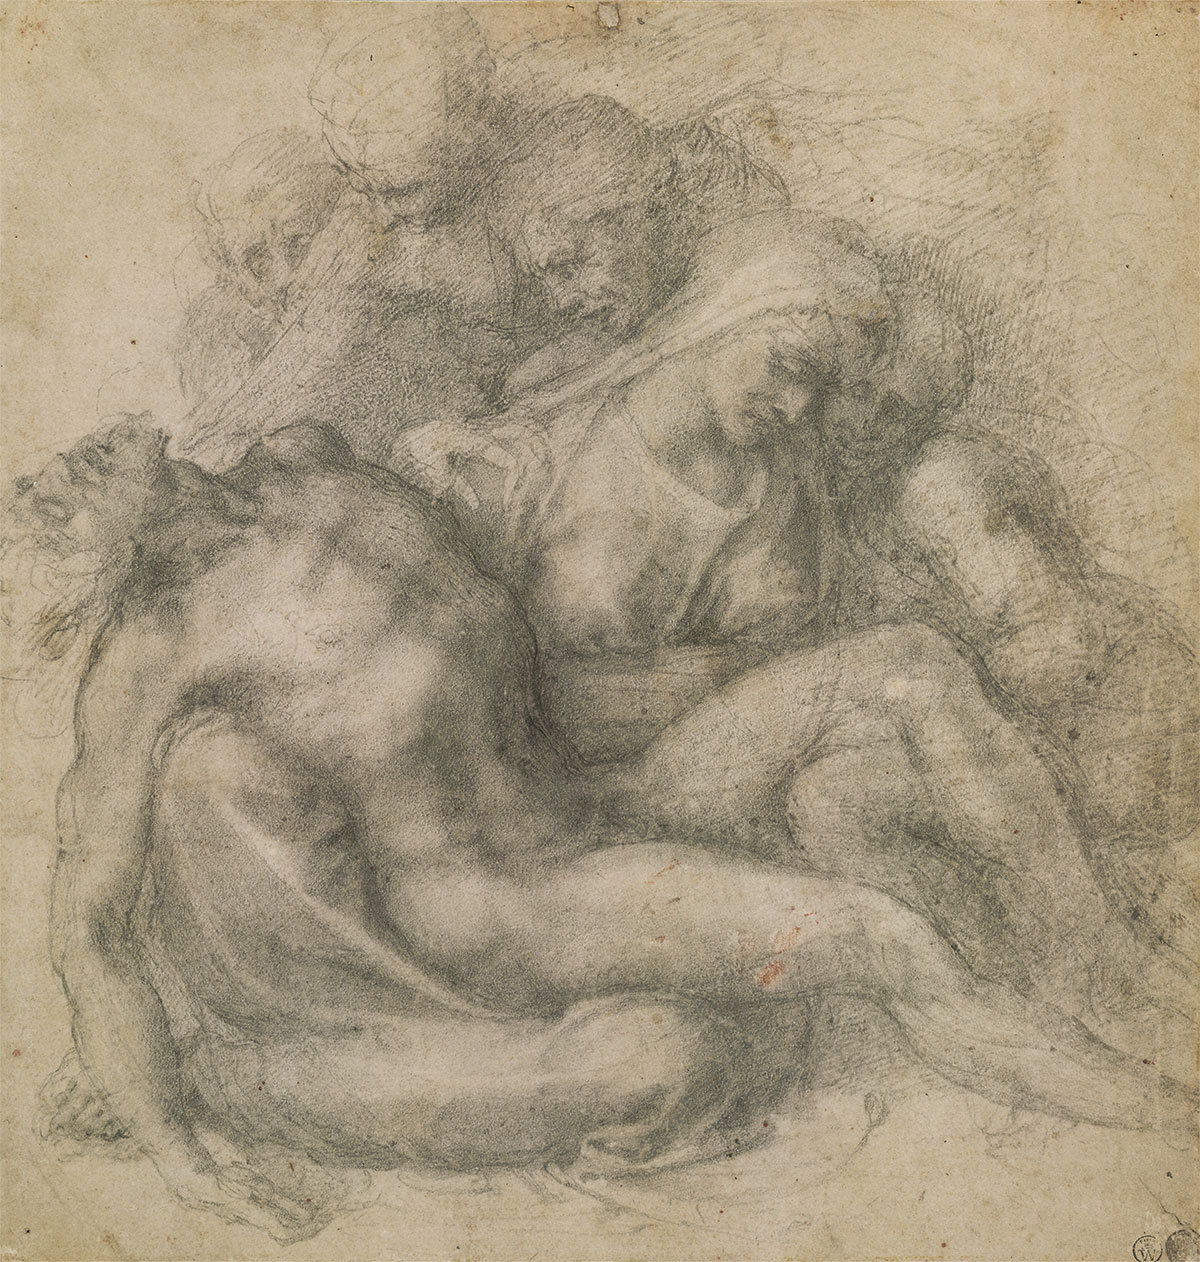 Michelangelo Buonarroti, The Lamentation over the Dead Christ,  c. 1540.